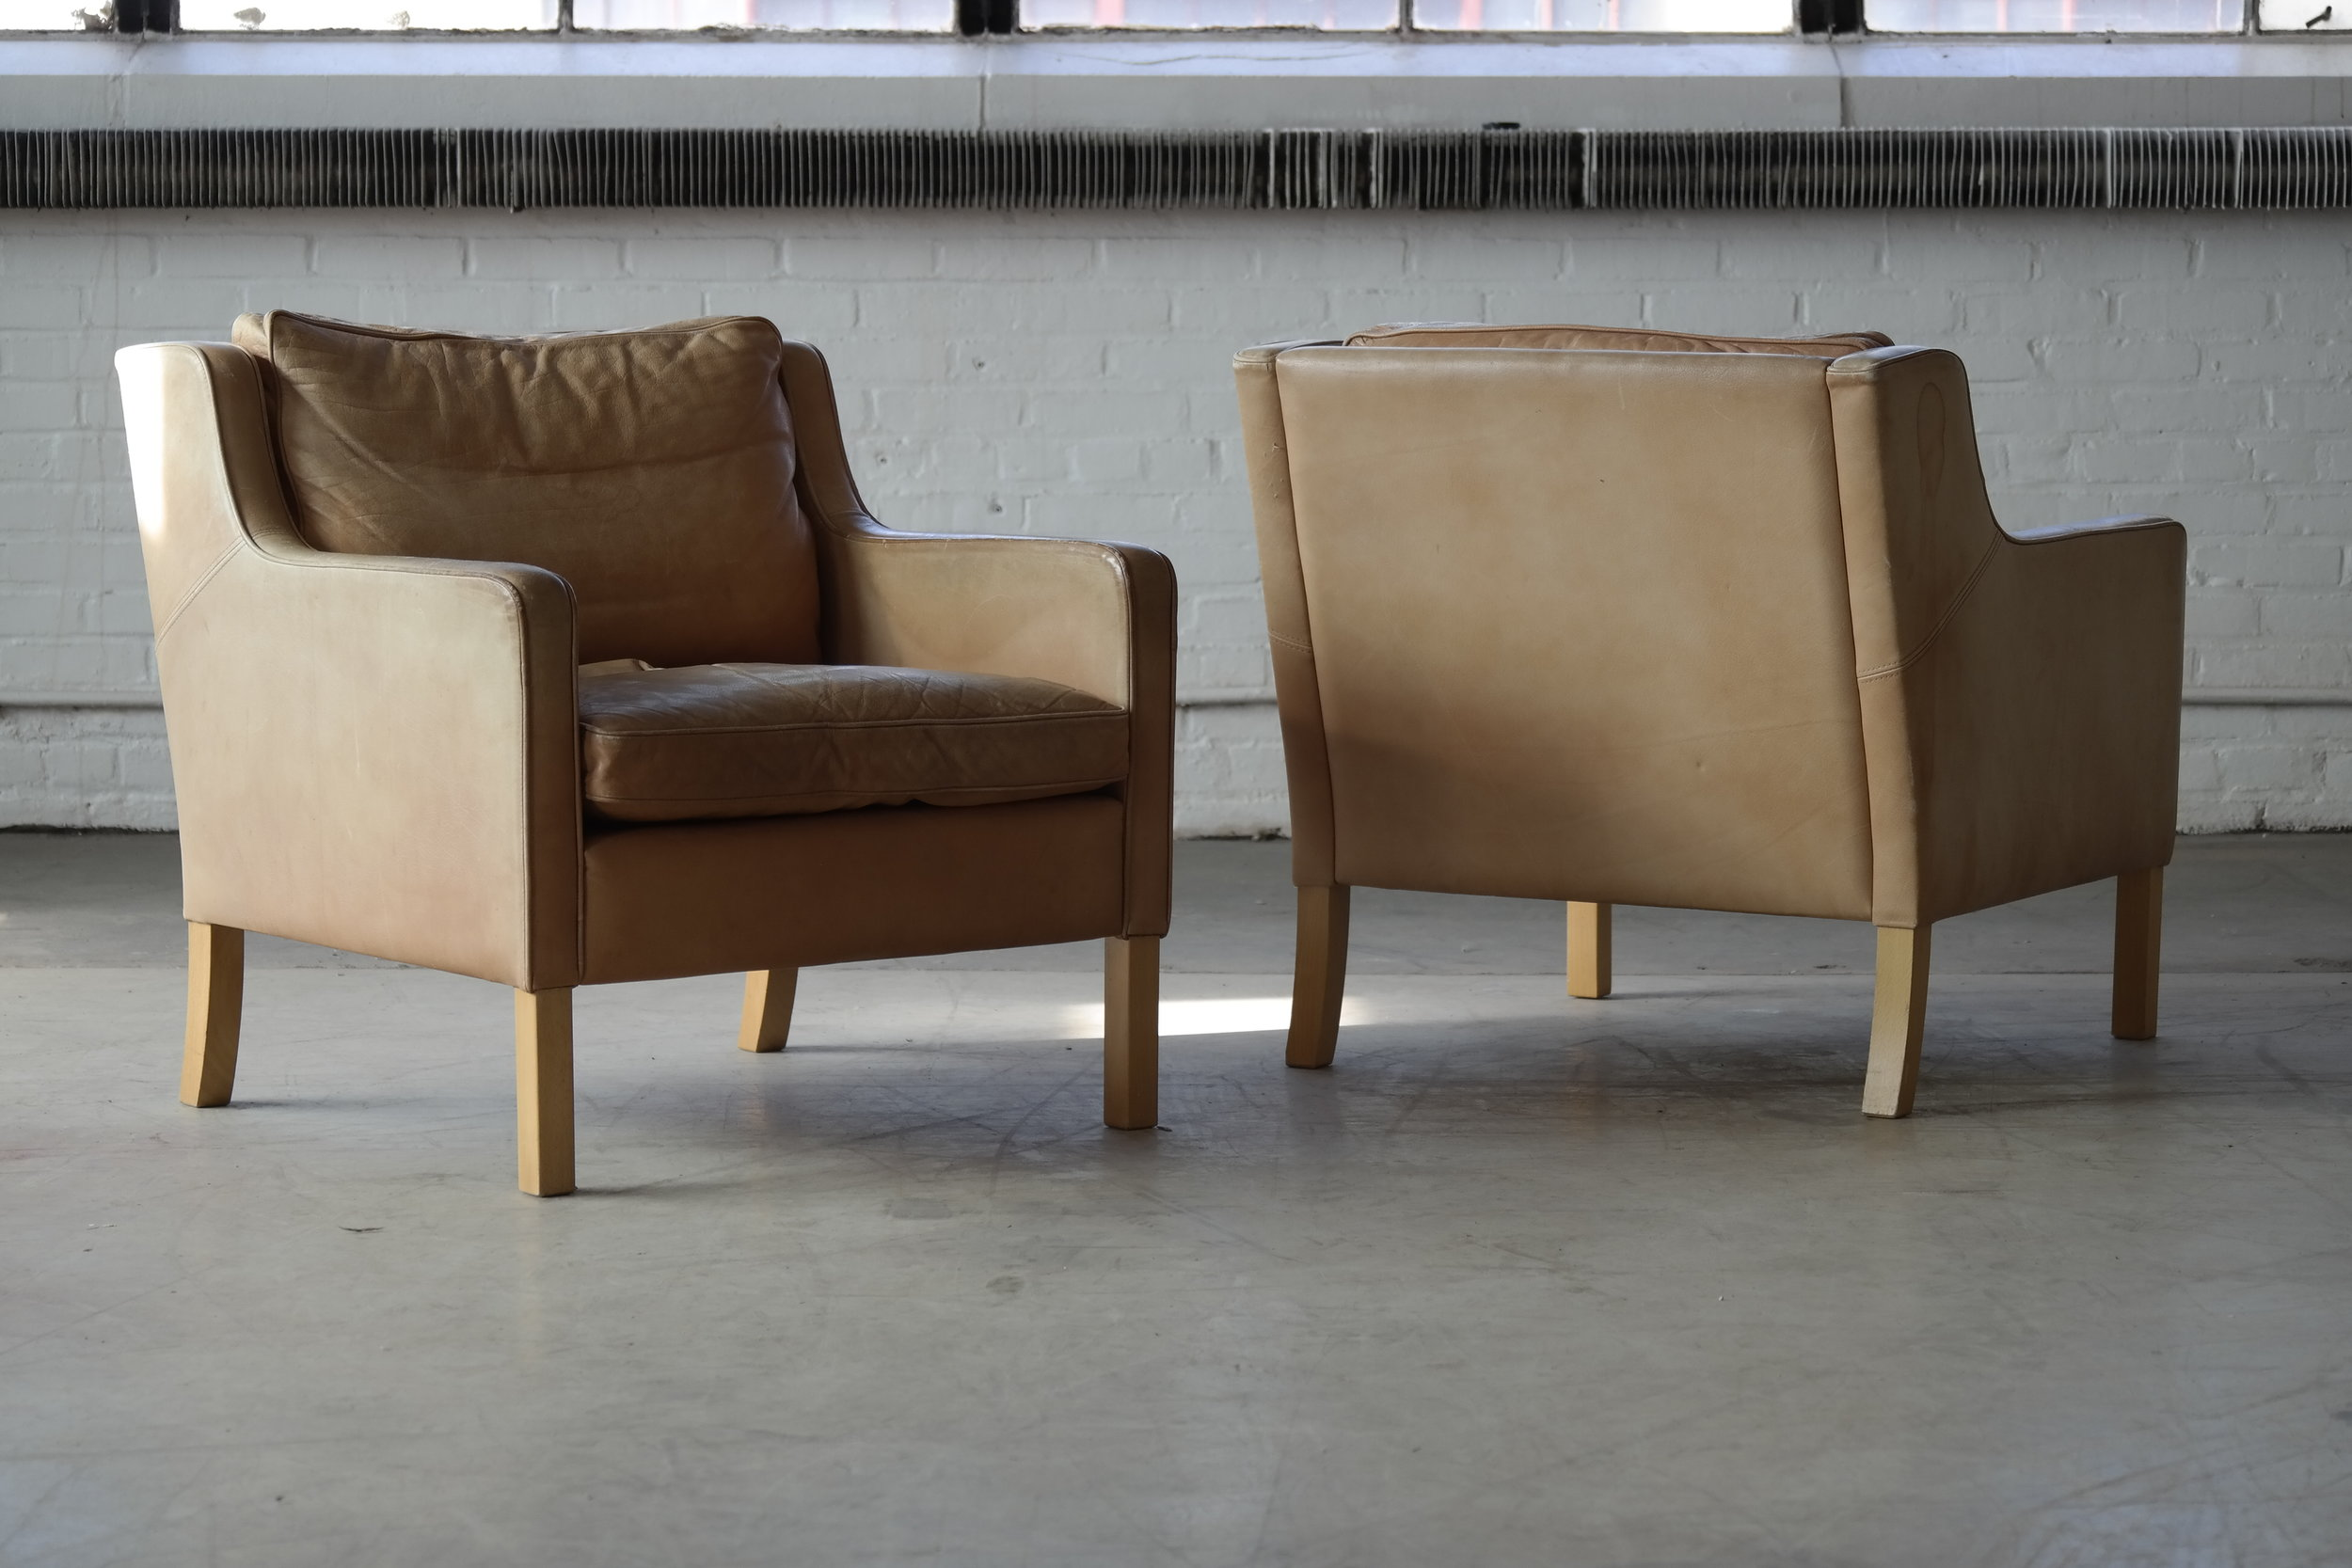 Pair of Lounge Chairs in Tan Leather Børge Mogensen Style Model 2321 by Stouby